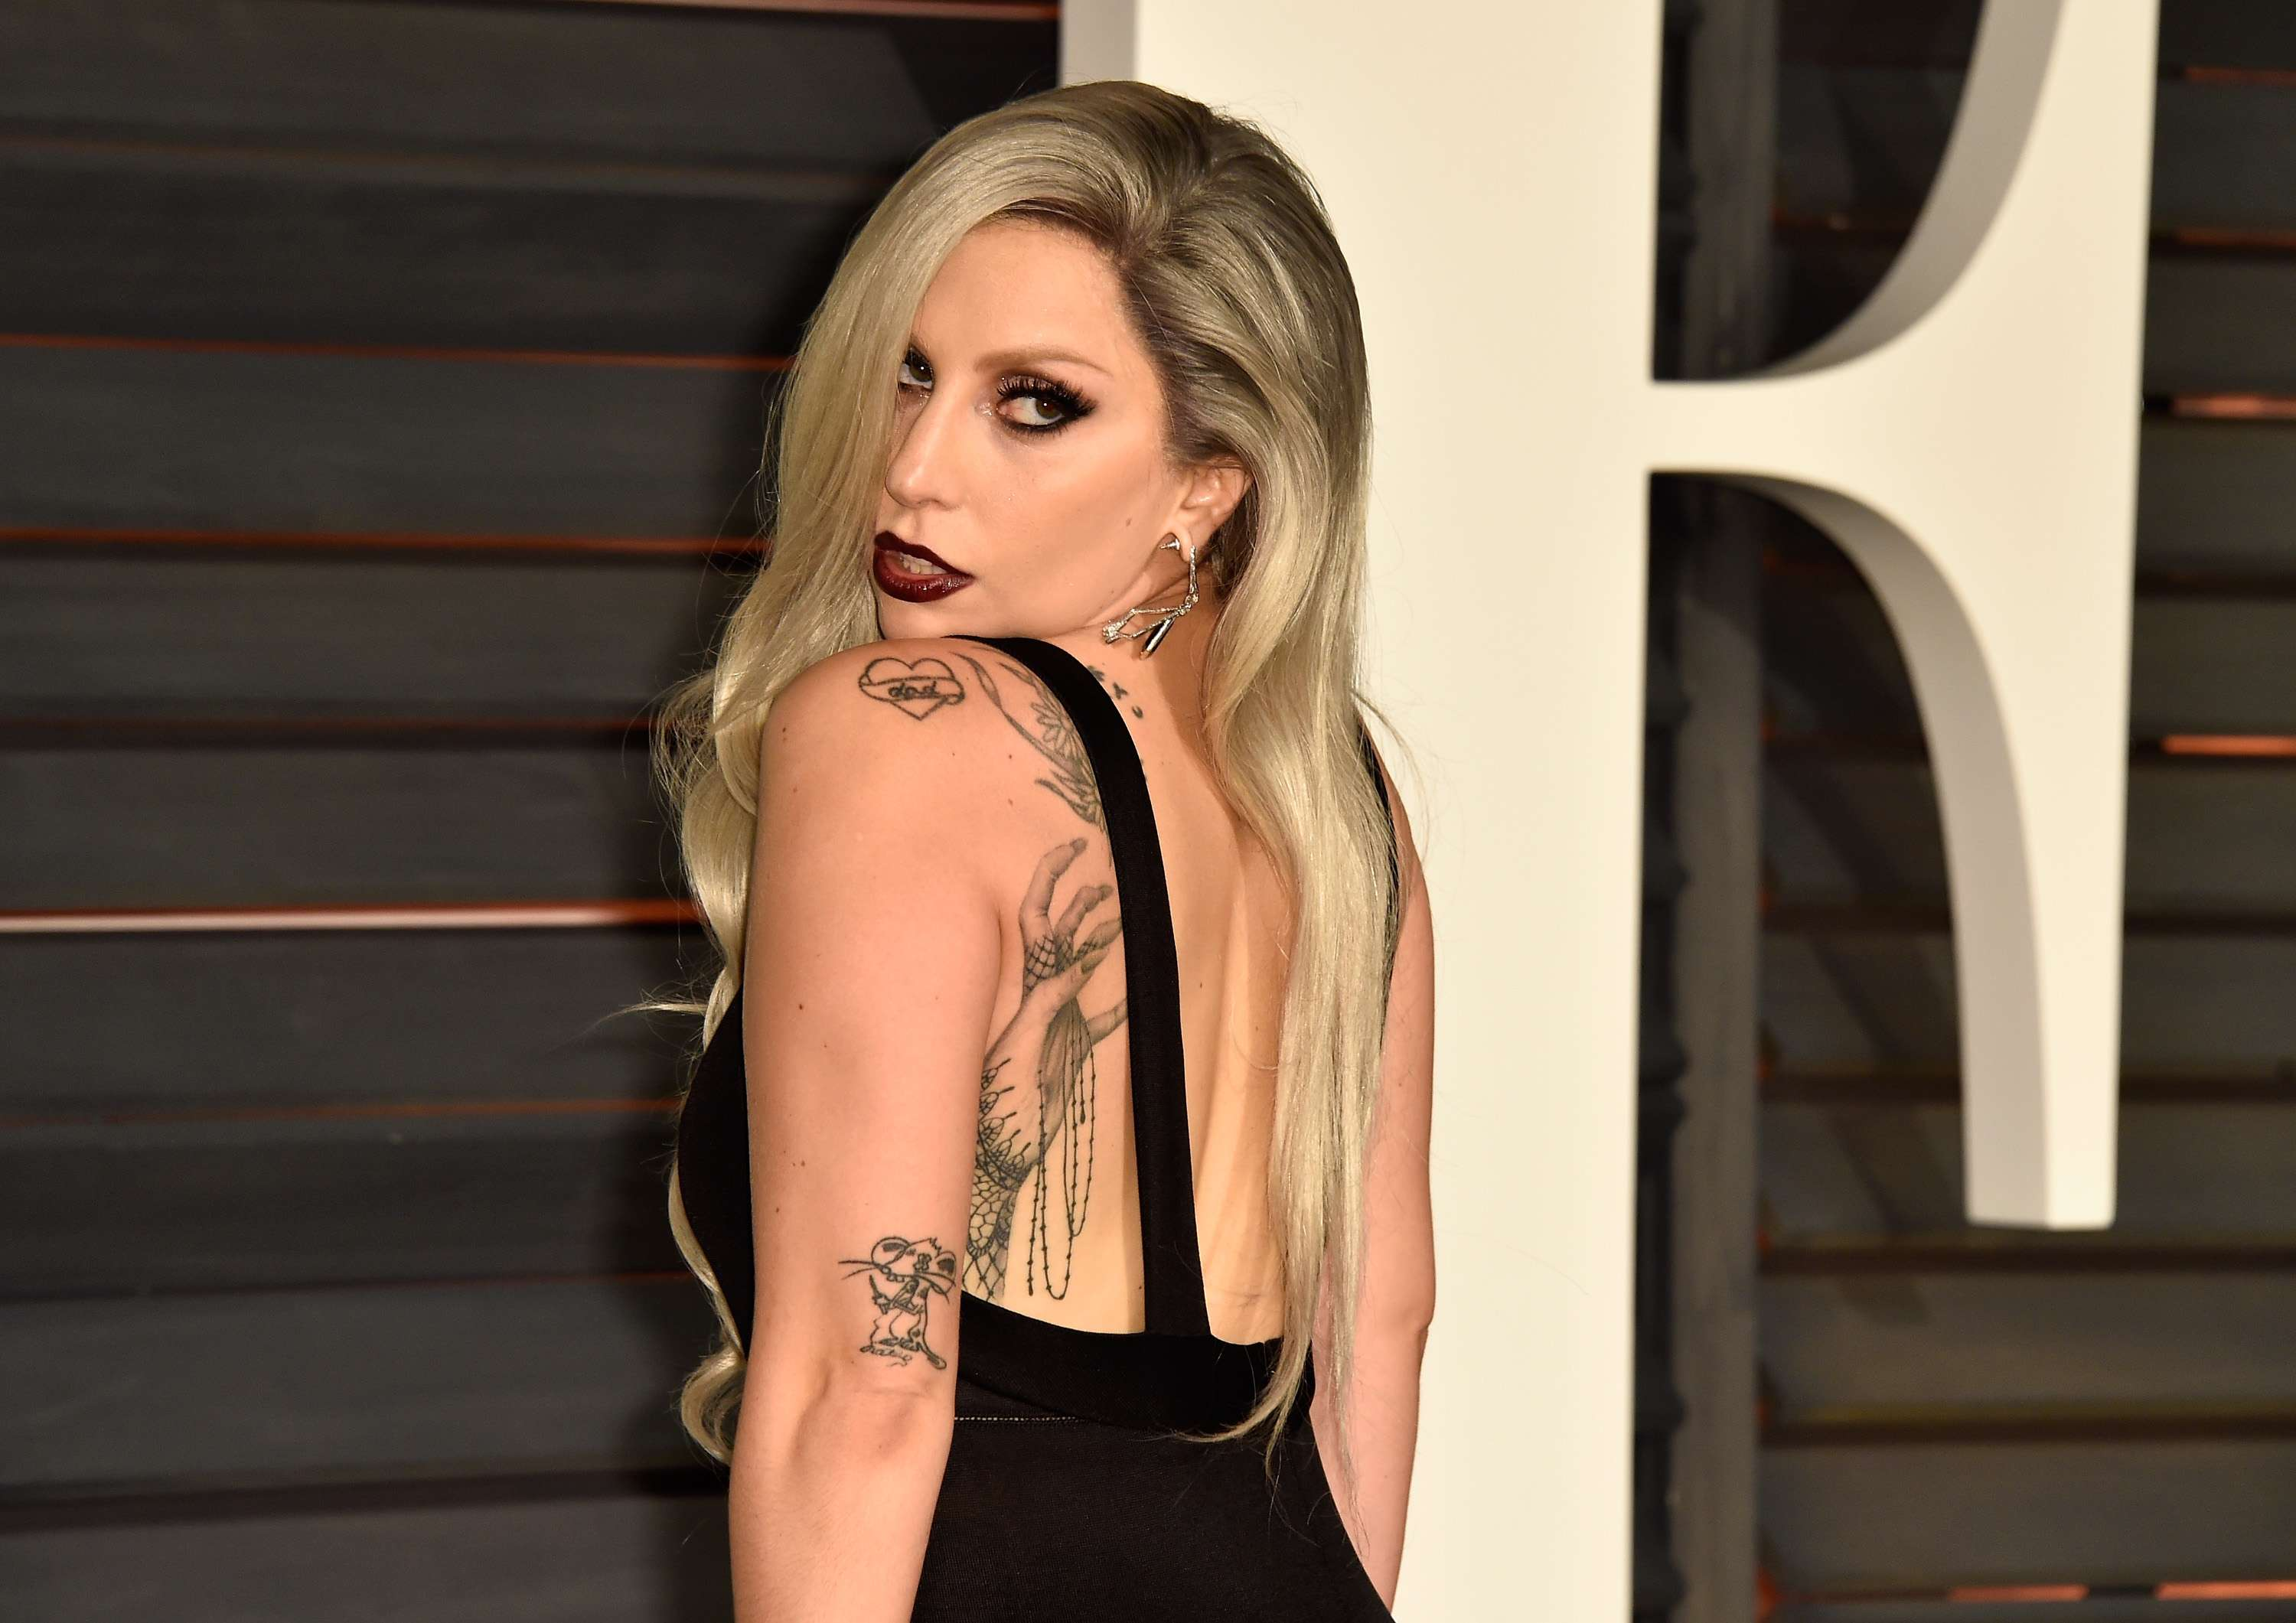 Lady Gaga en la fiesta post-Oscar 2015 Foto: Getty